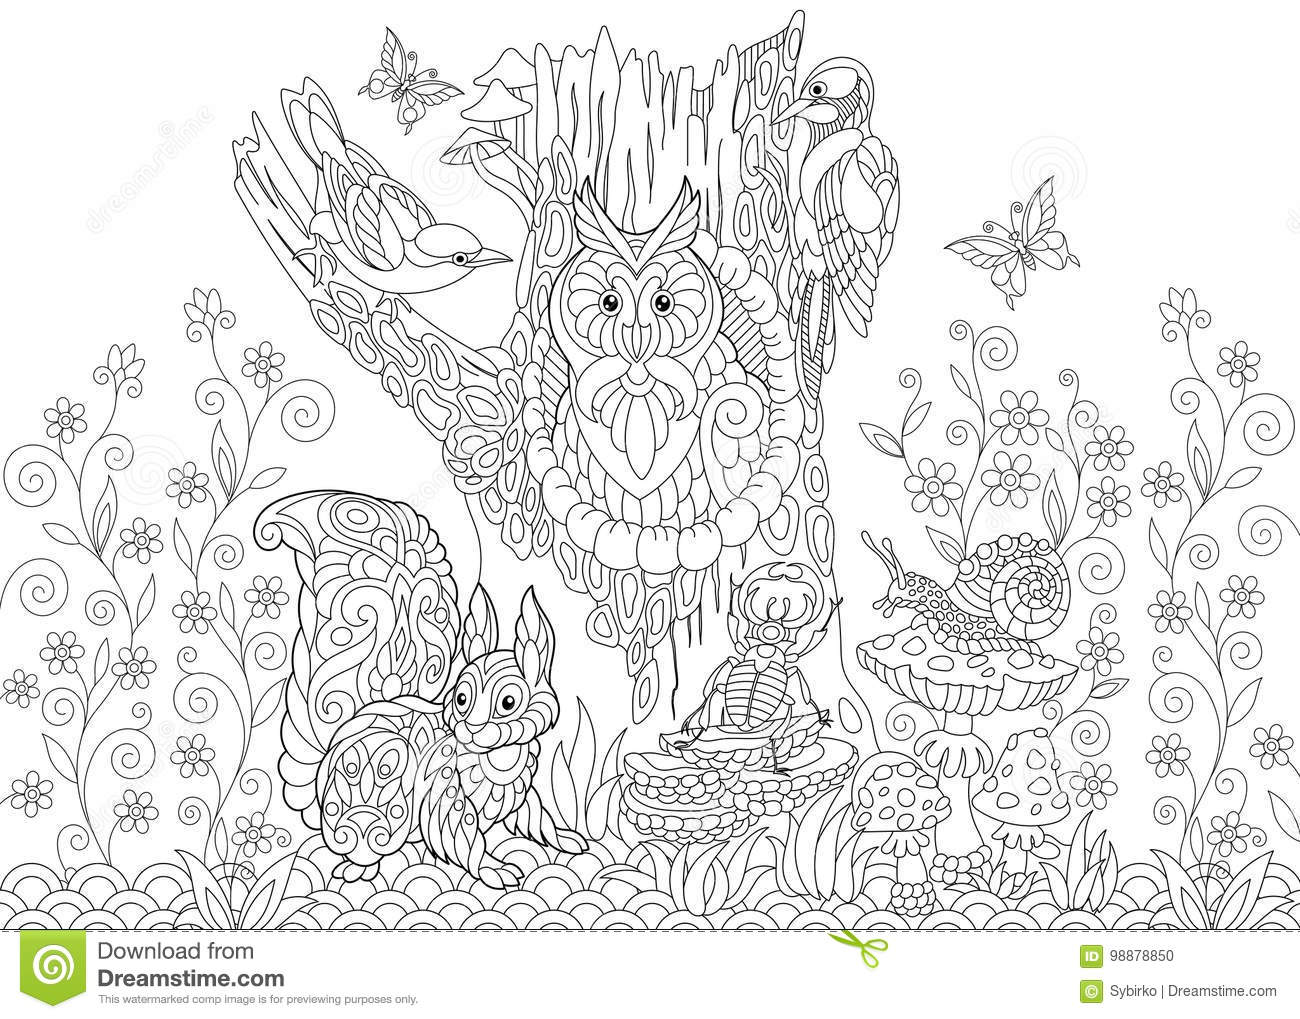 Coloring Page Of Forest Animals Owl Cuckoo Bird Woodpecker Squirrel Snail Stag Beetle Butterflies Freehand Sketch Drawing For Adult Antistress